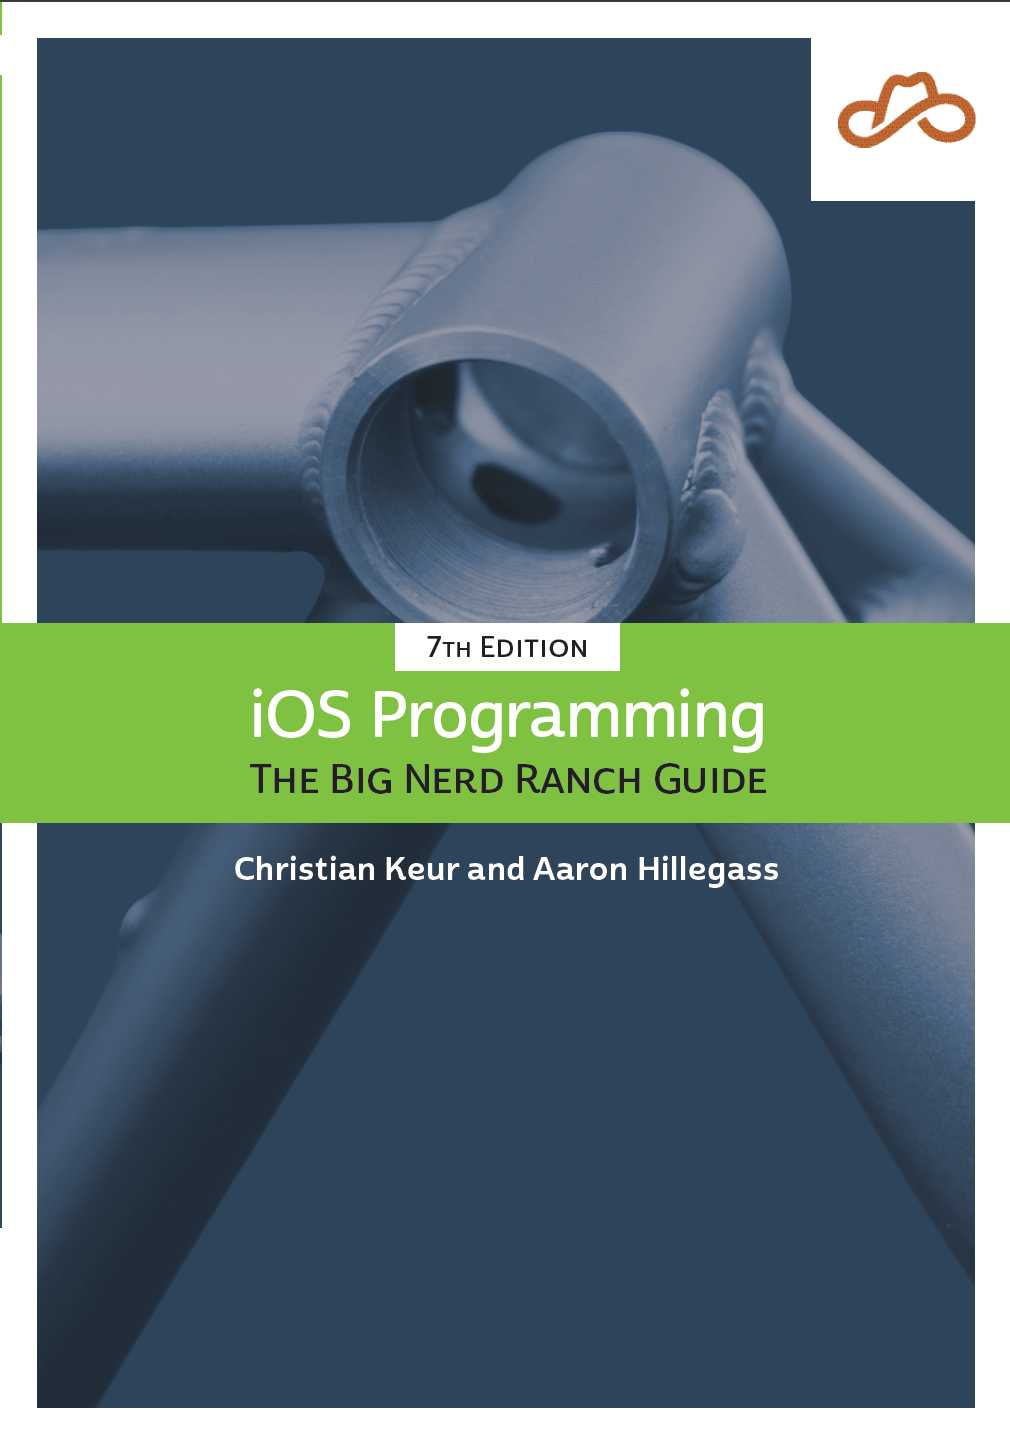 iOS Programming: The Big Nerd Ranch Guide (7th Edition)